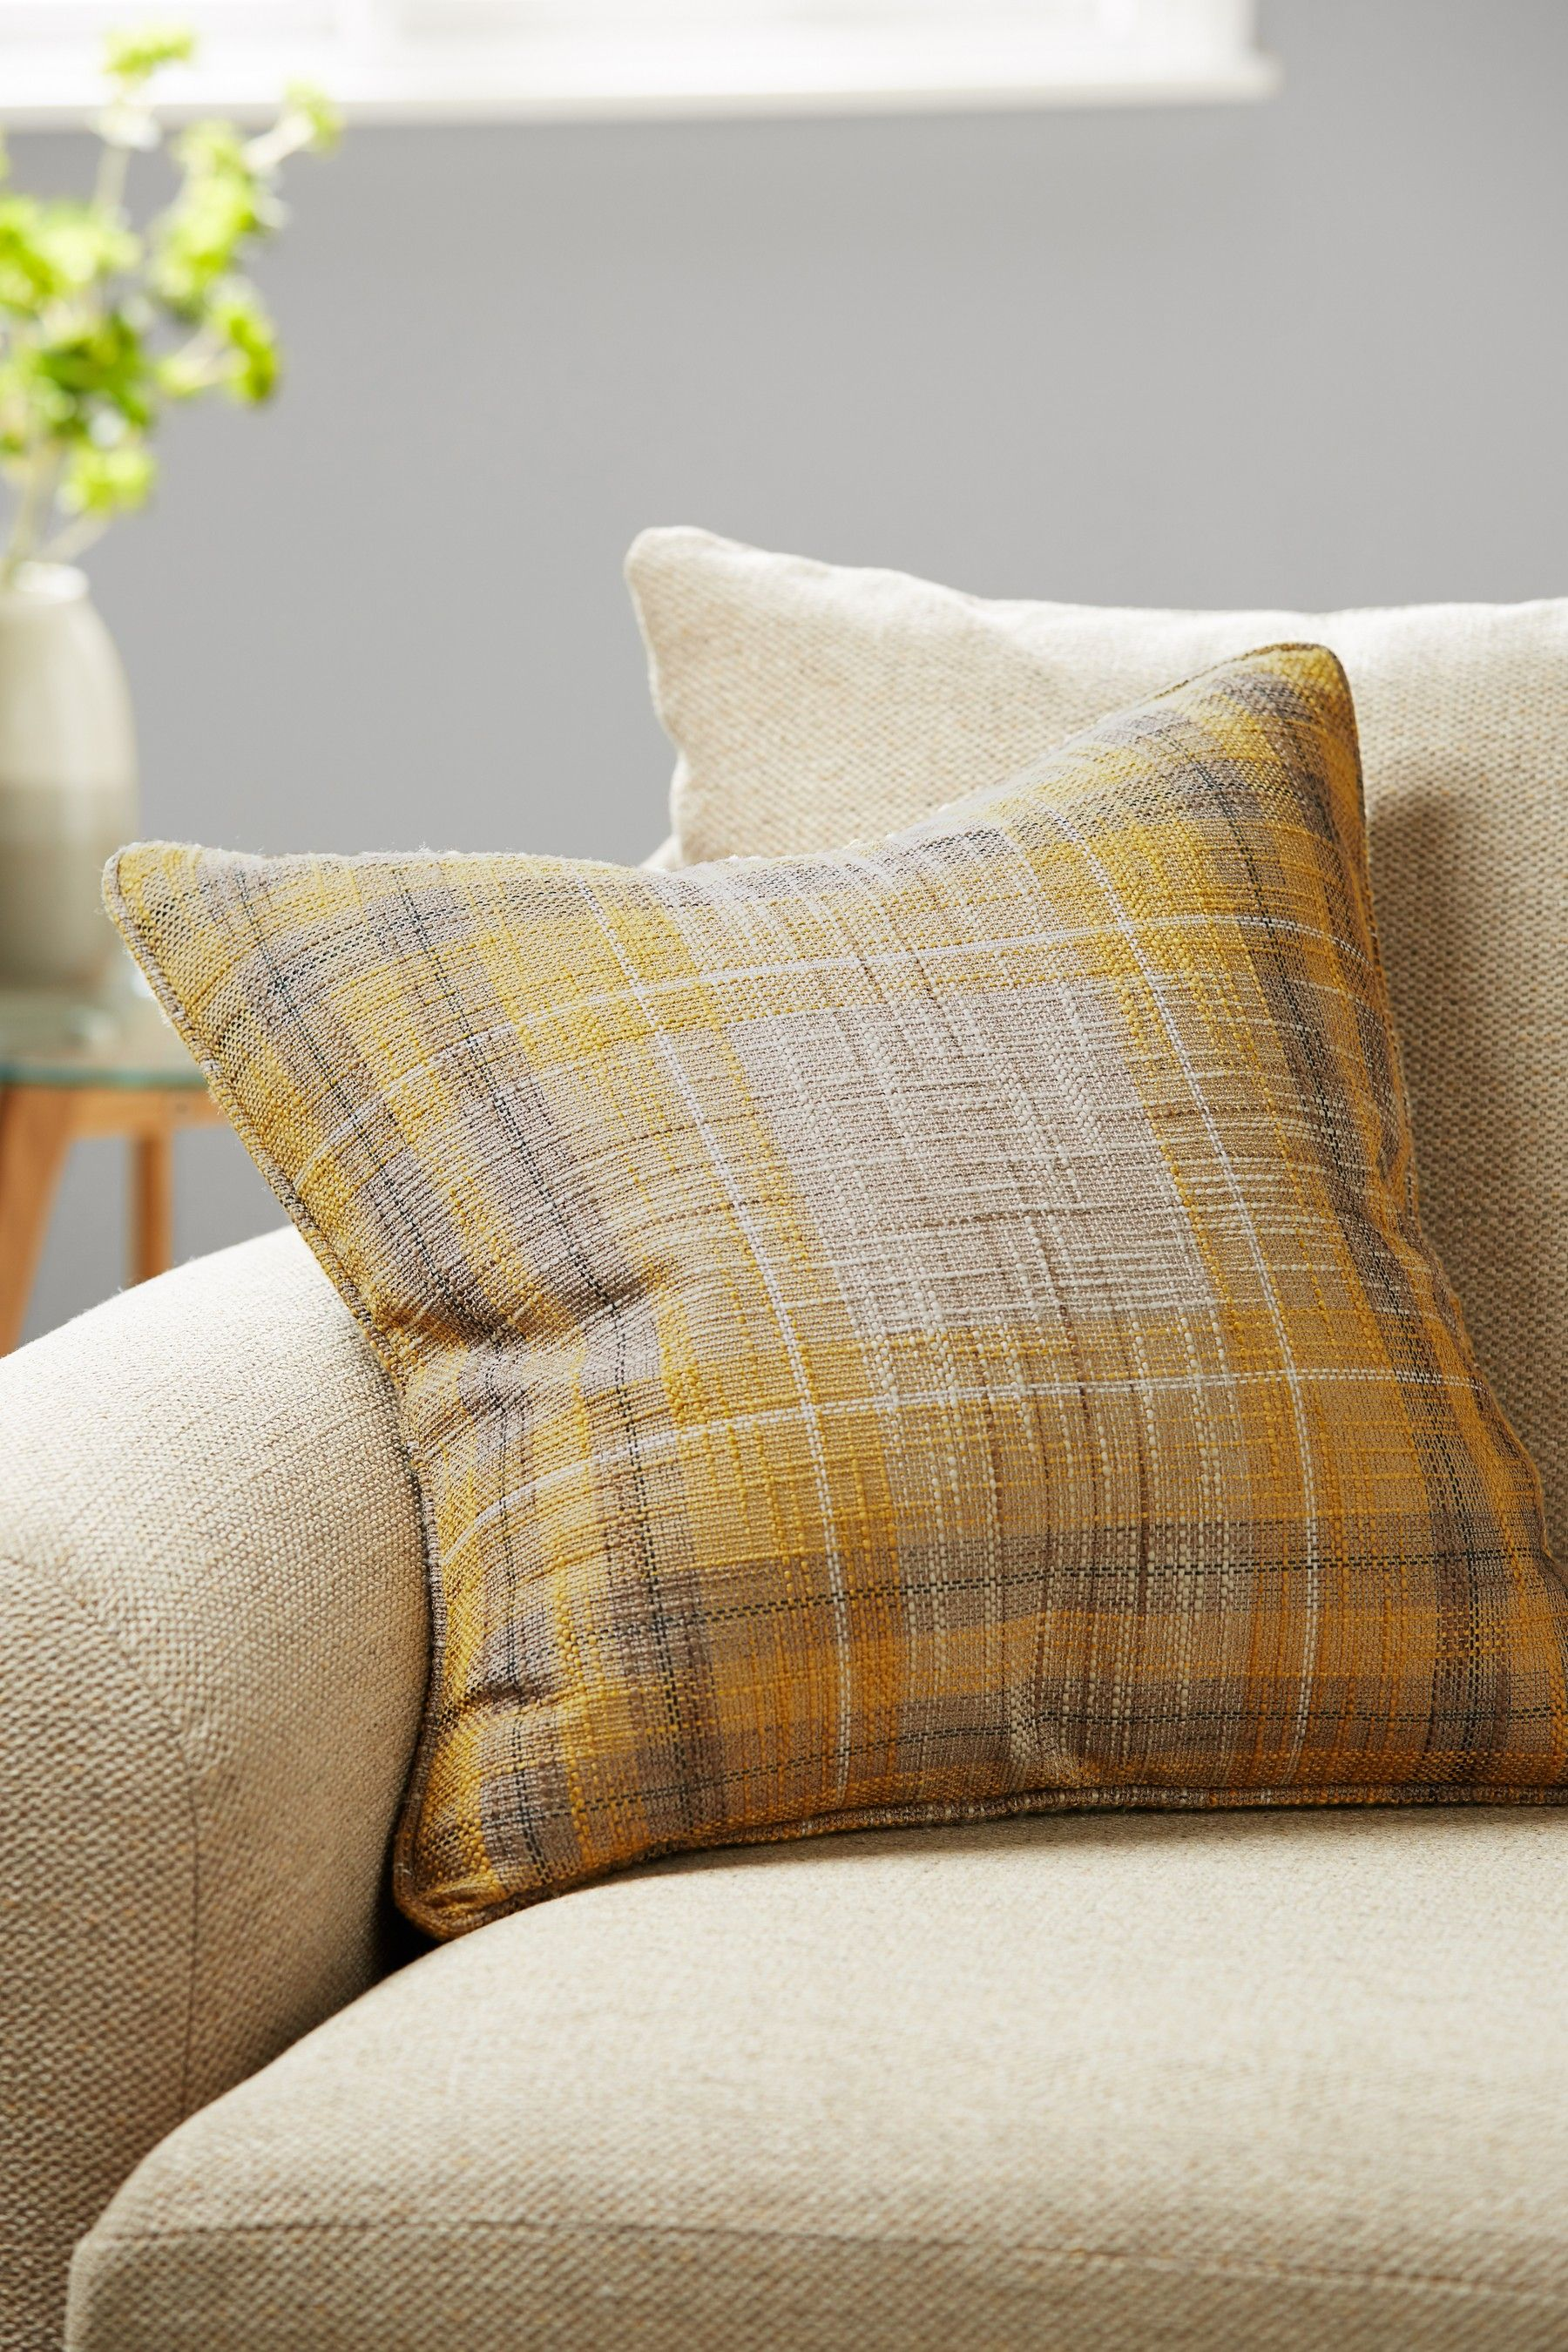 Buy Astley Check Cushion From The Next Uk Online Shop In 2020 Checked Cushions Cushions Grey Armchair